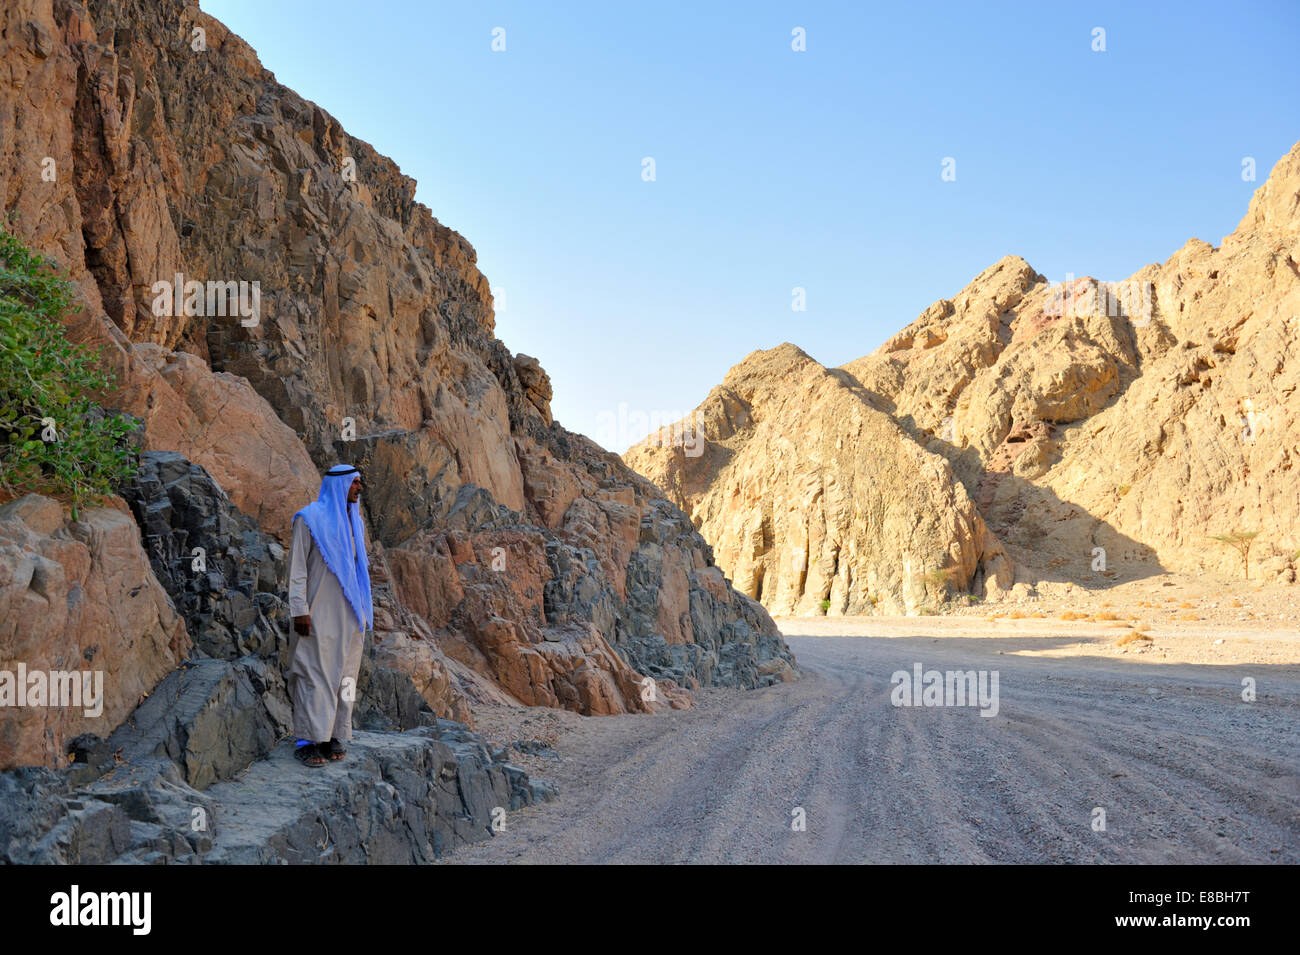 Sinai Peninsula desert track between mountains with Bedouin man in traditional thawb robe and kufeya head ware - Stock Image